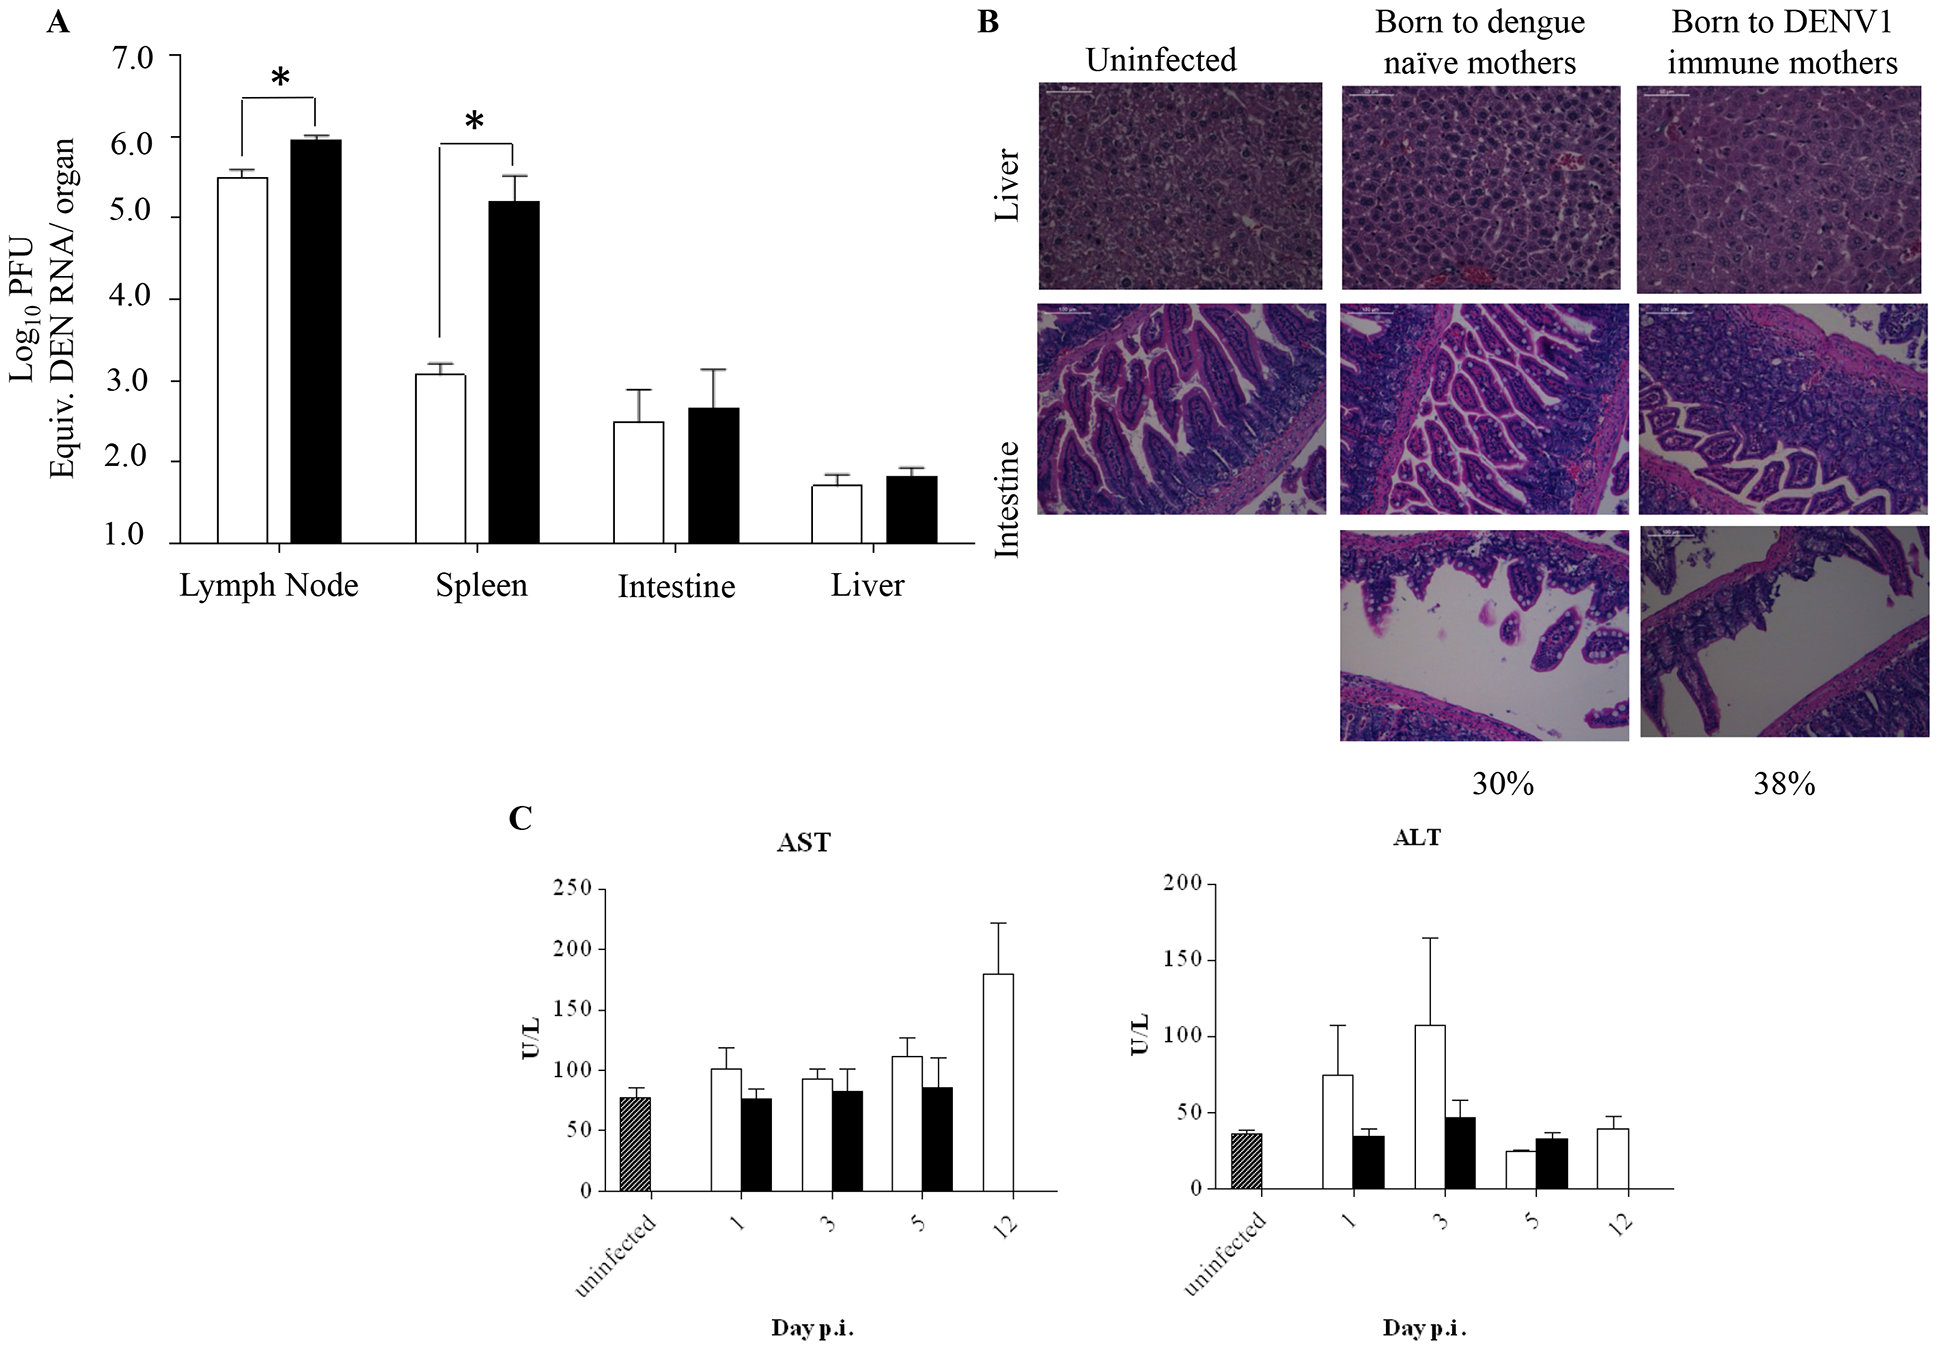 Viral load and histology analysis in DENV2-infected mice born to either DENV1 immune or dengue naïve mothers.